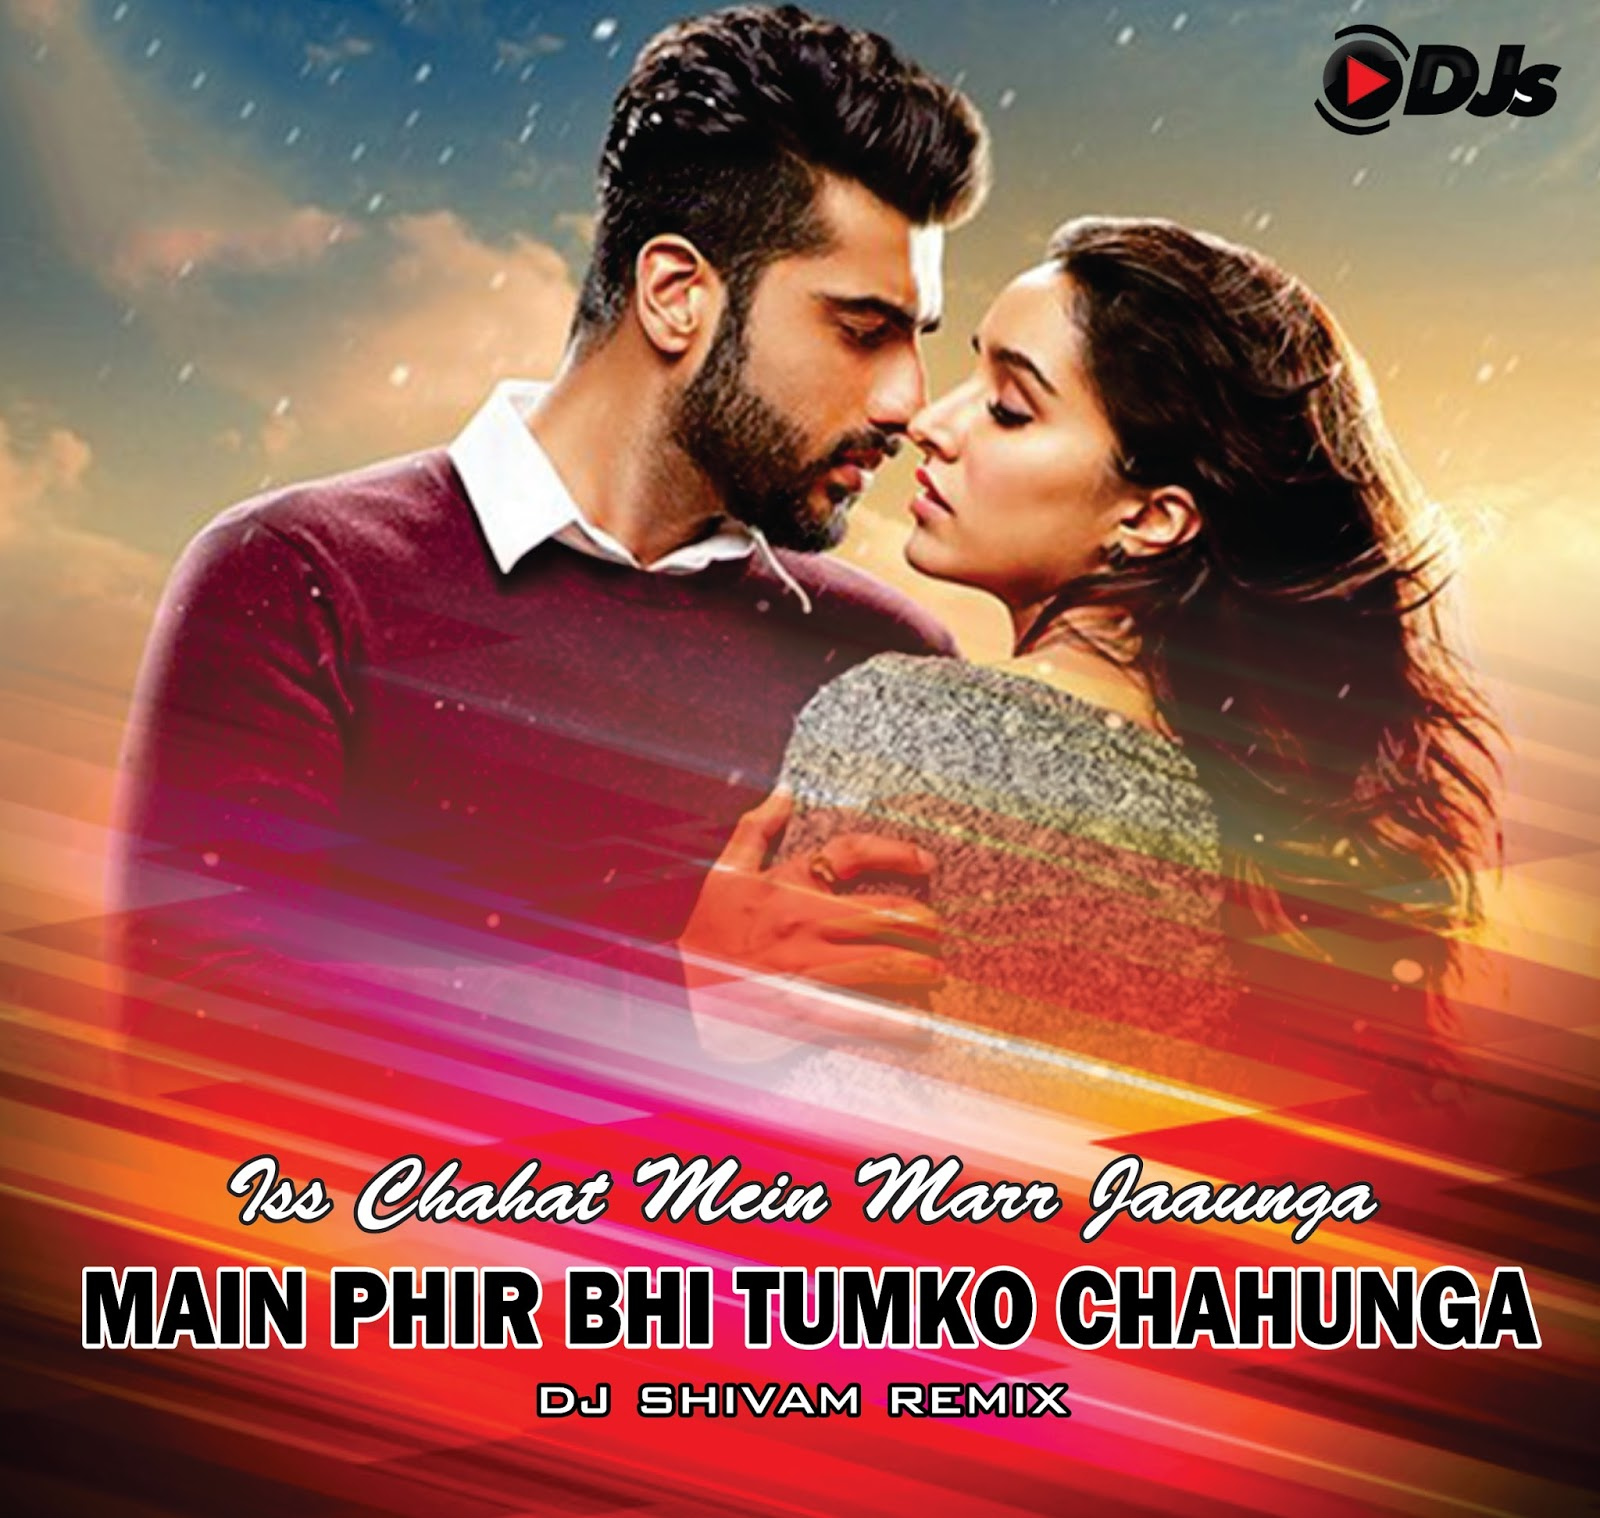 Chahunga Main Ringtone Download: DJ SHIVAM